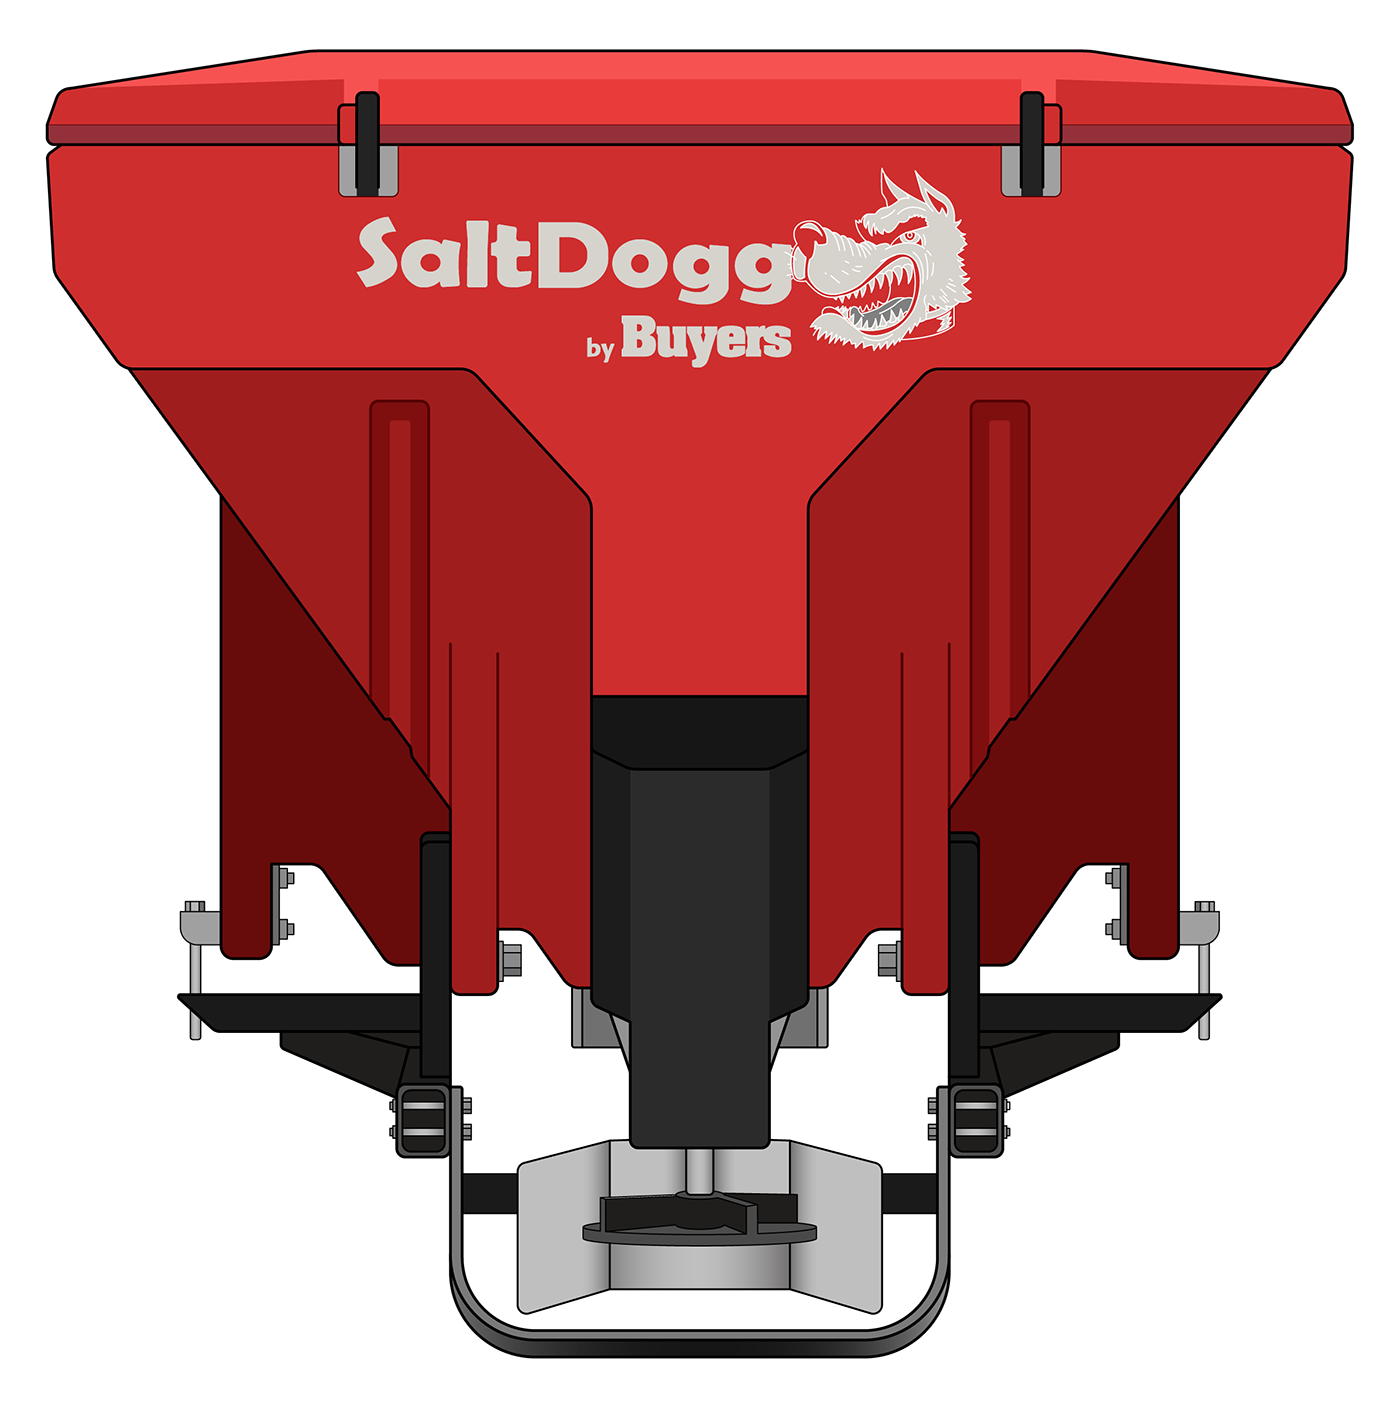 TGS07RED-S.A.M. SaltDogg TGS07 11.0 Cubic Foot Red Polymer Electric Tailgate Spreader